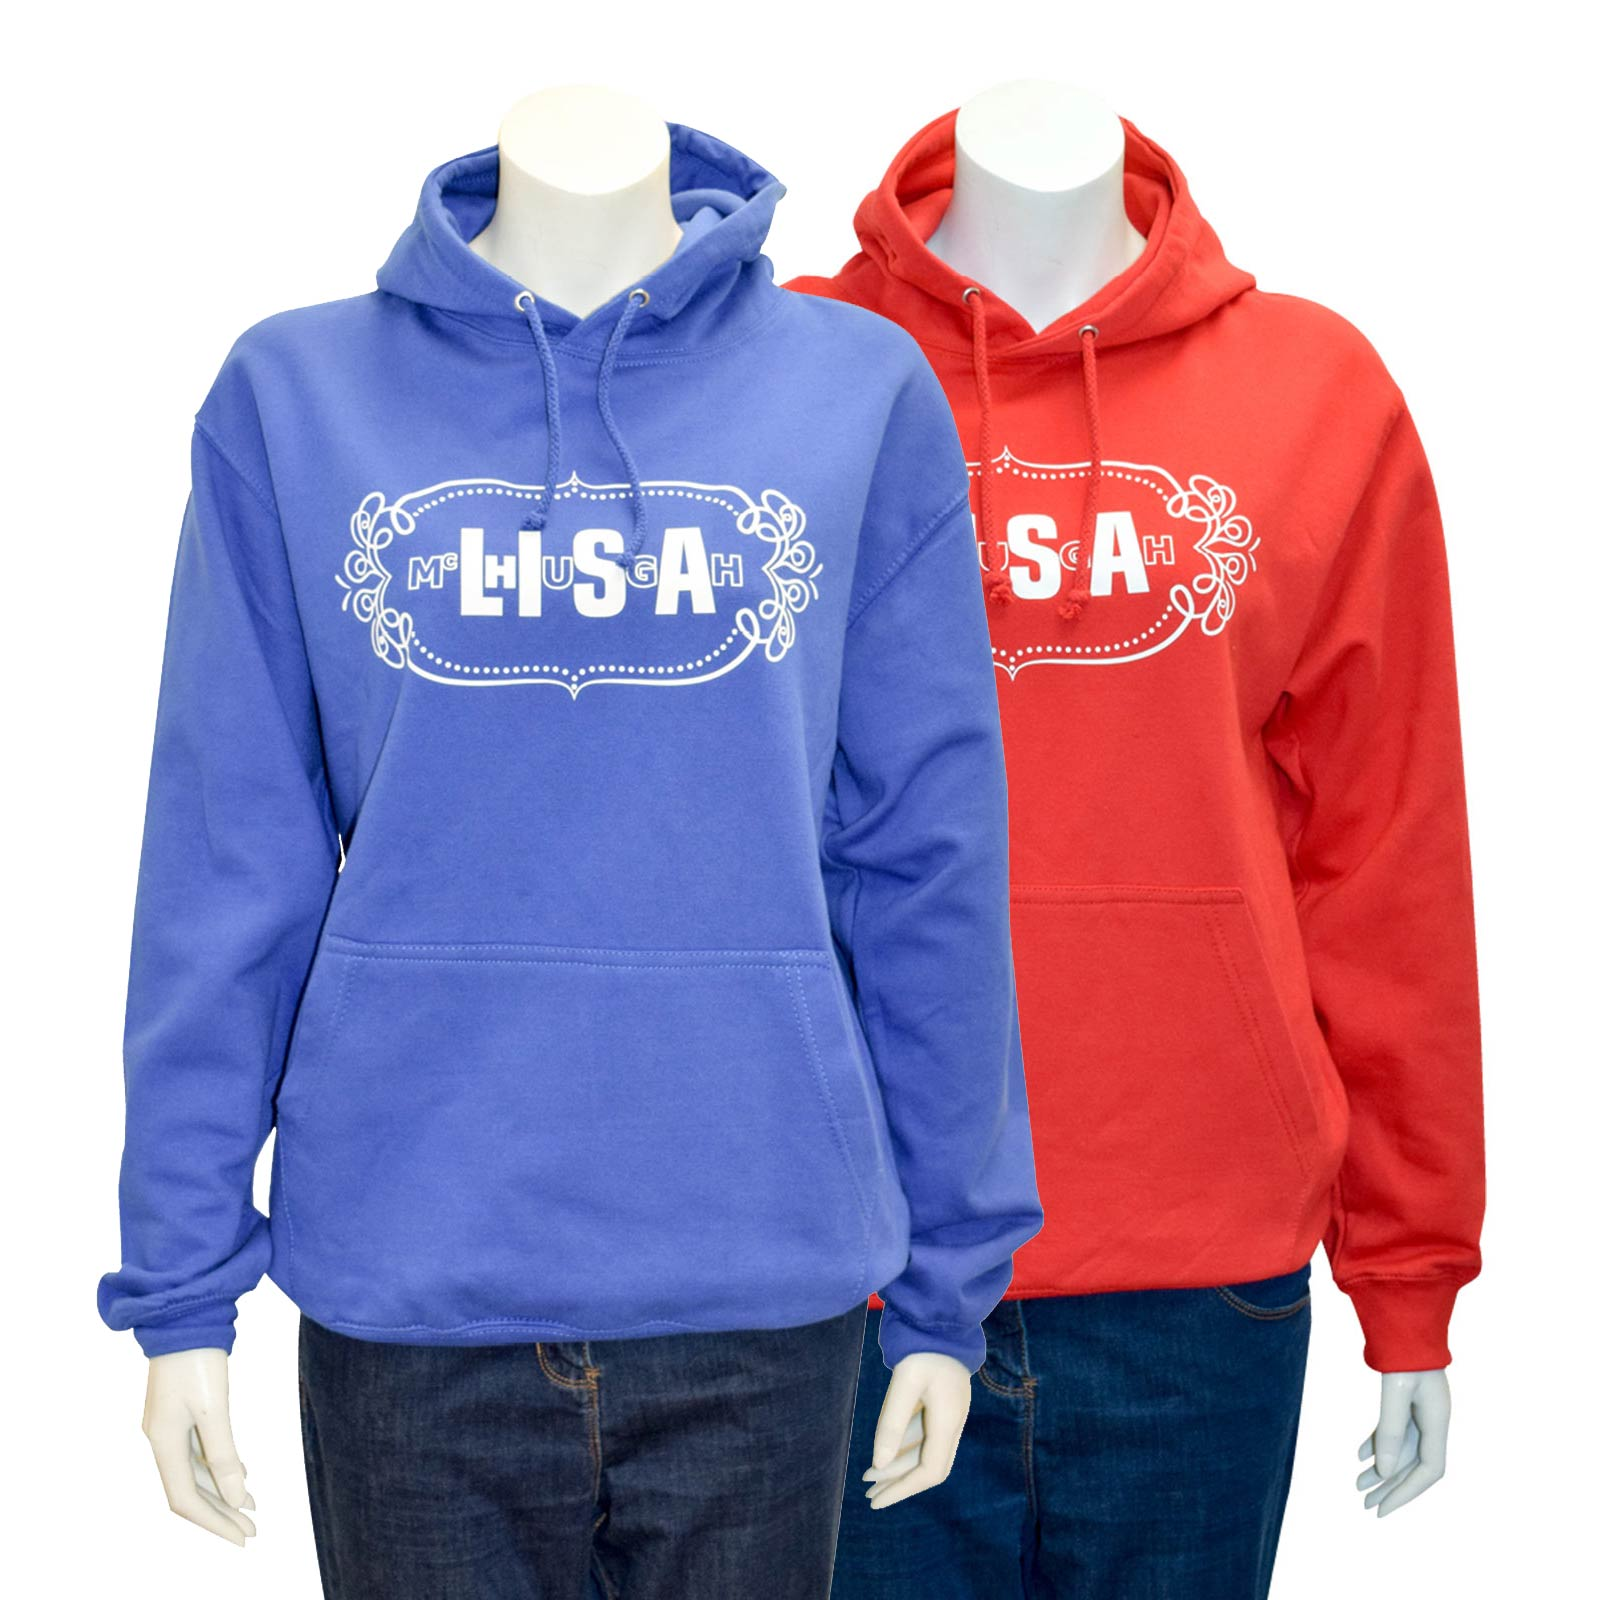 lisa mchugh adult hoodies